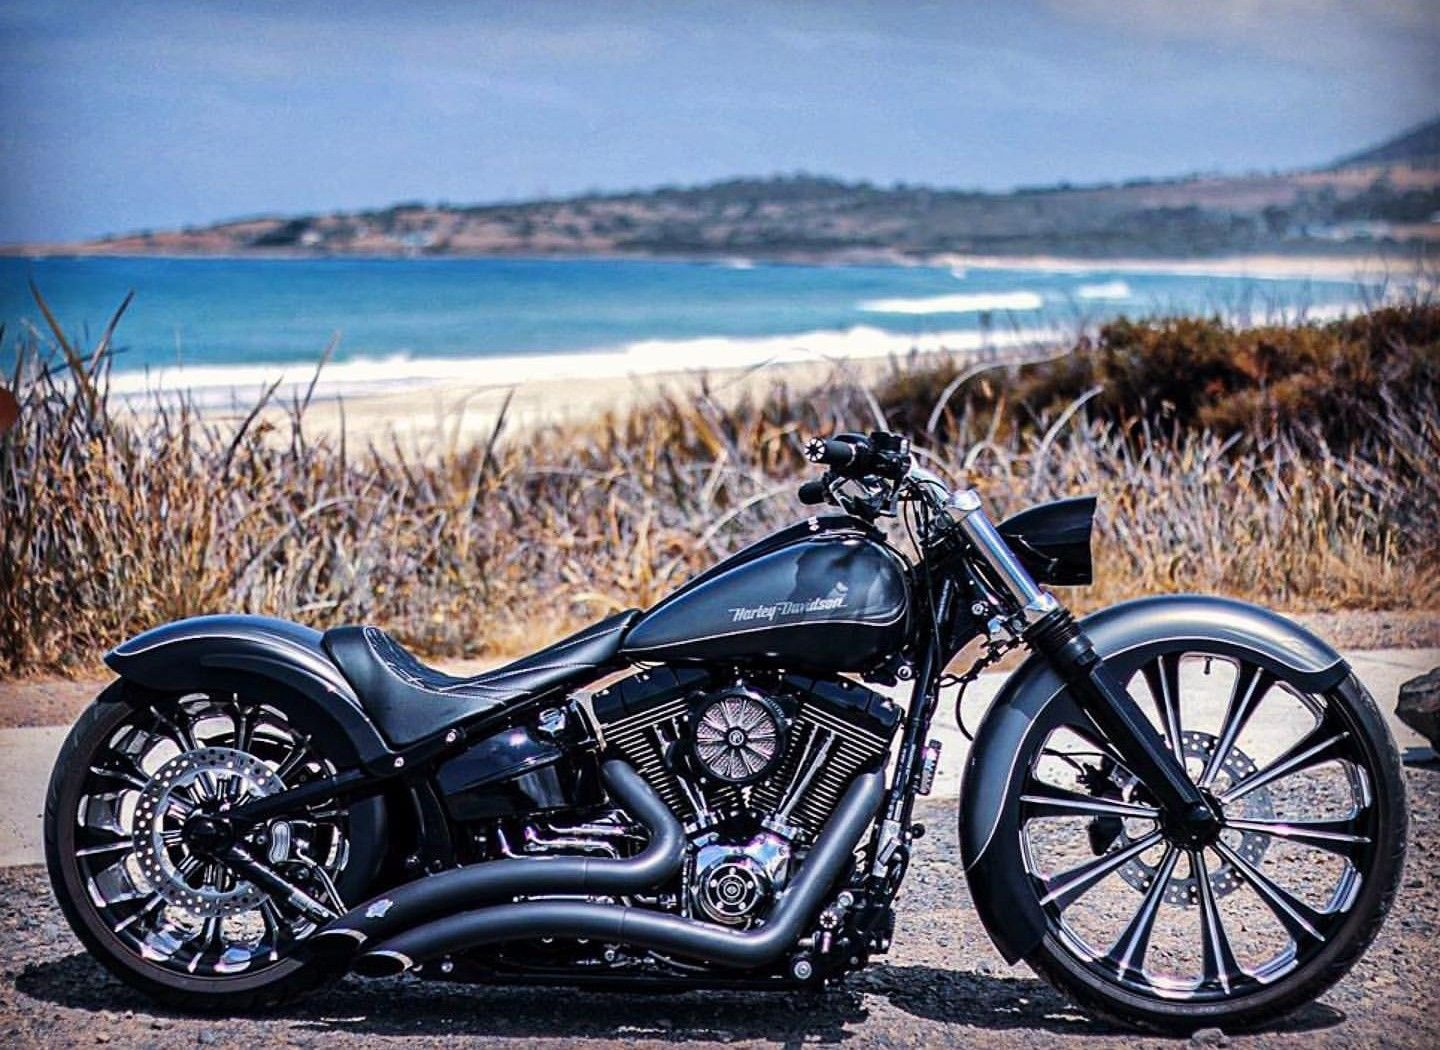 Pin By Sharon Edmondson Mitchhart On Motorcycle In 2020 Super